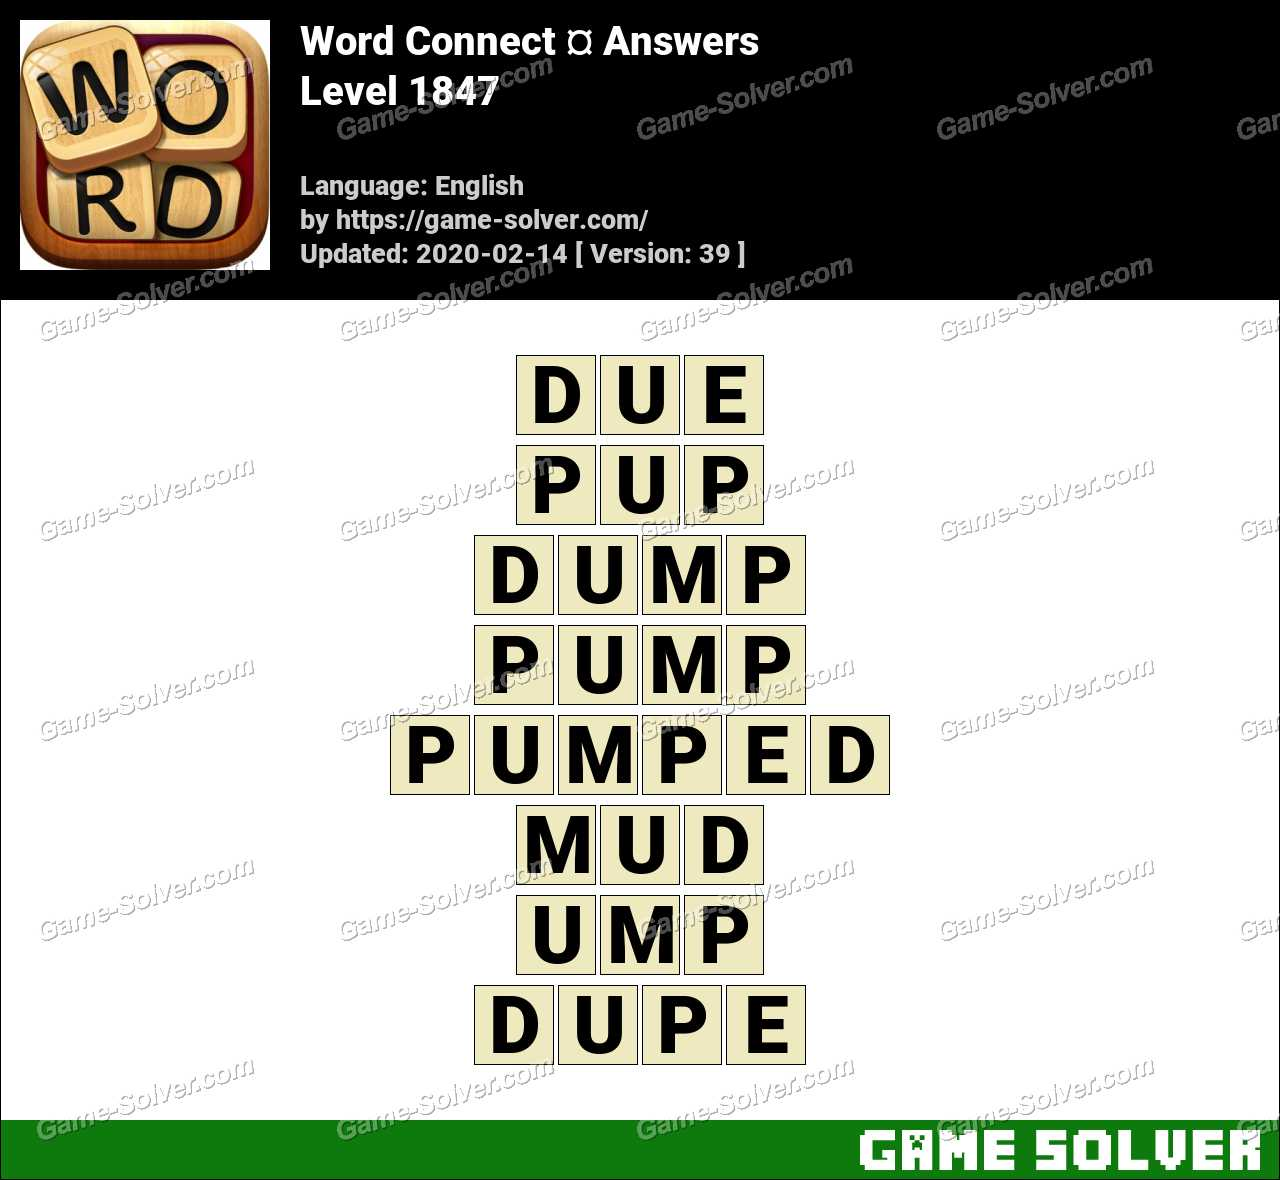 Word Connect Level 1847 Answers